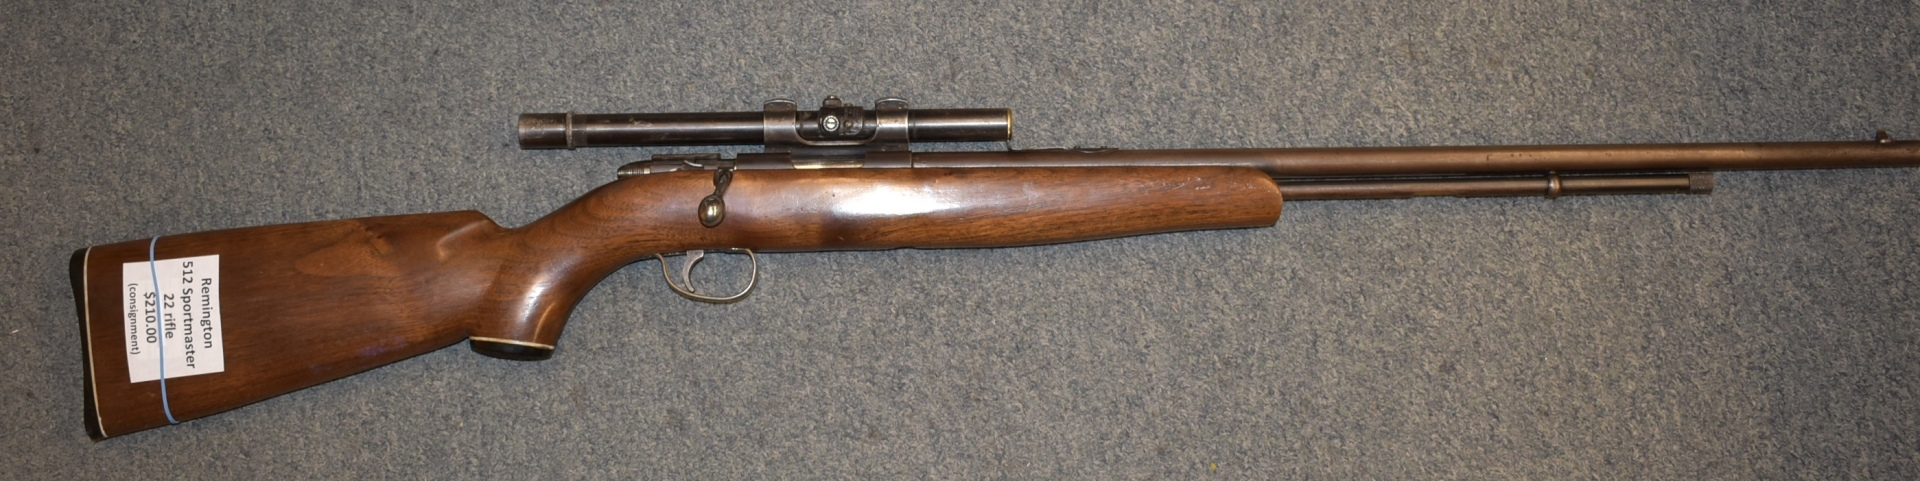 Remington 512 Sportmaster